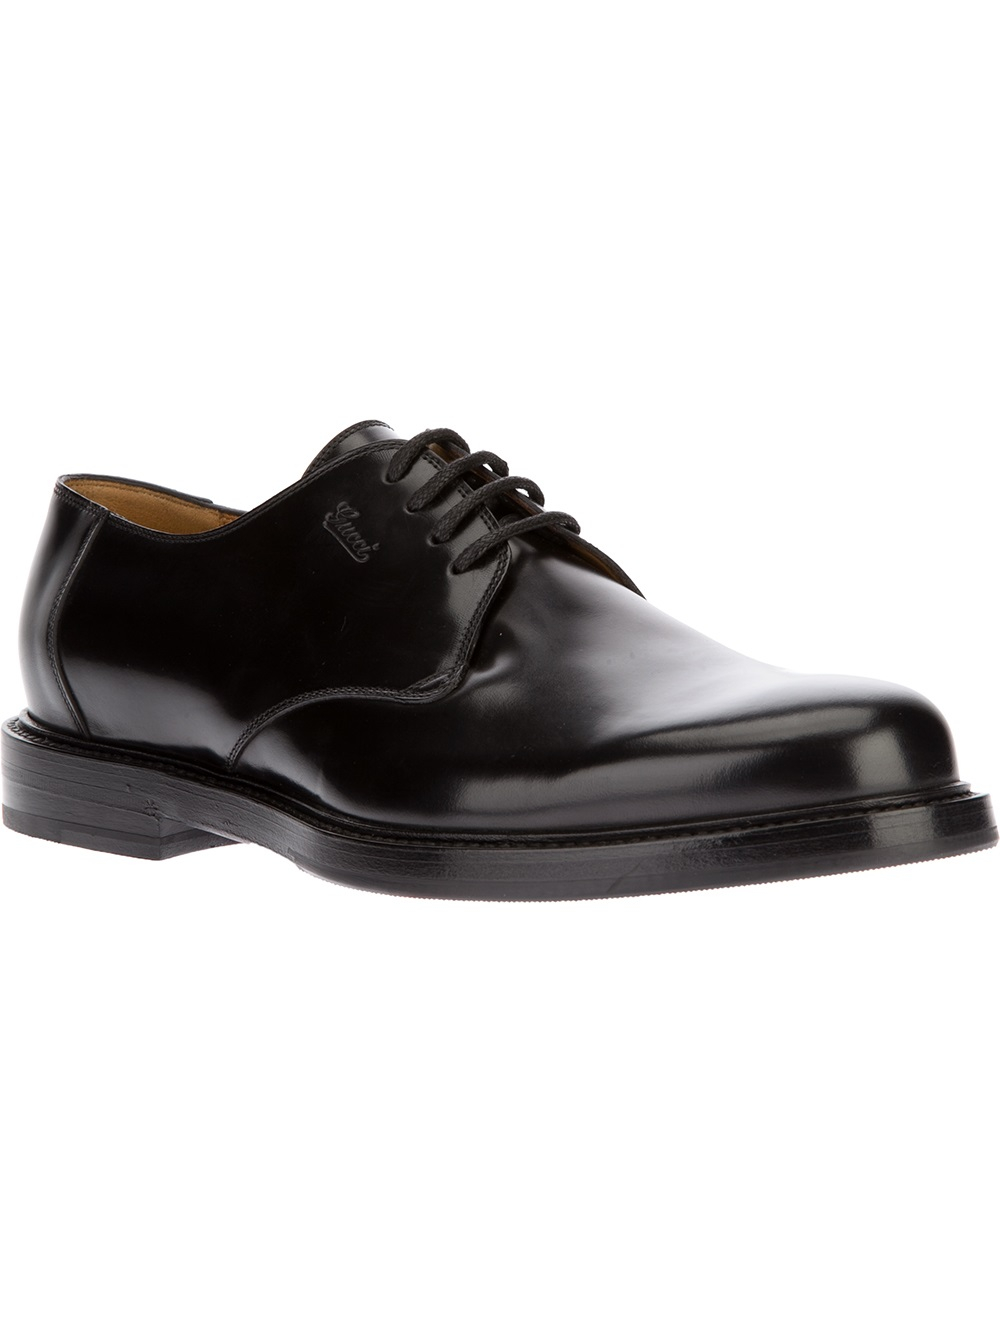 f704d67a097 Lyst - Gucci Chunky Derby Shoe in Black for Men